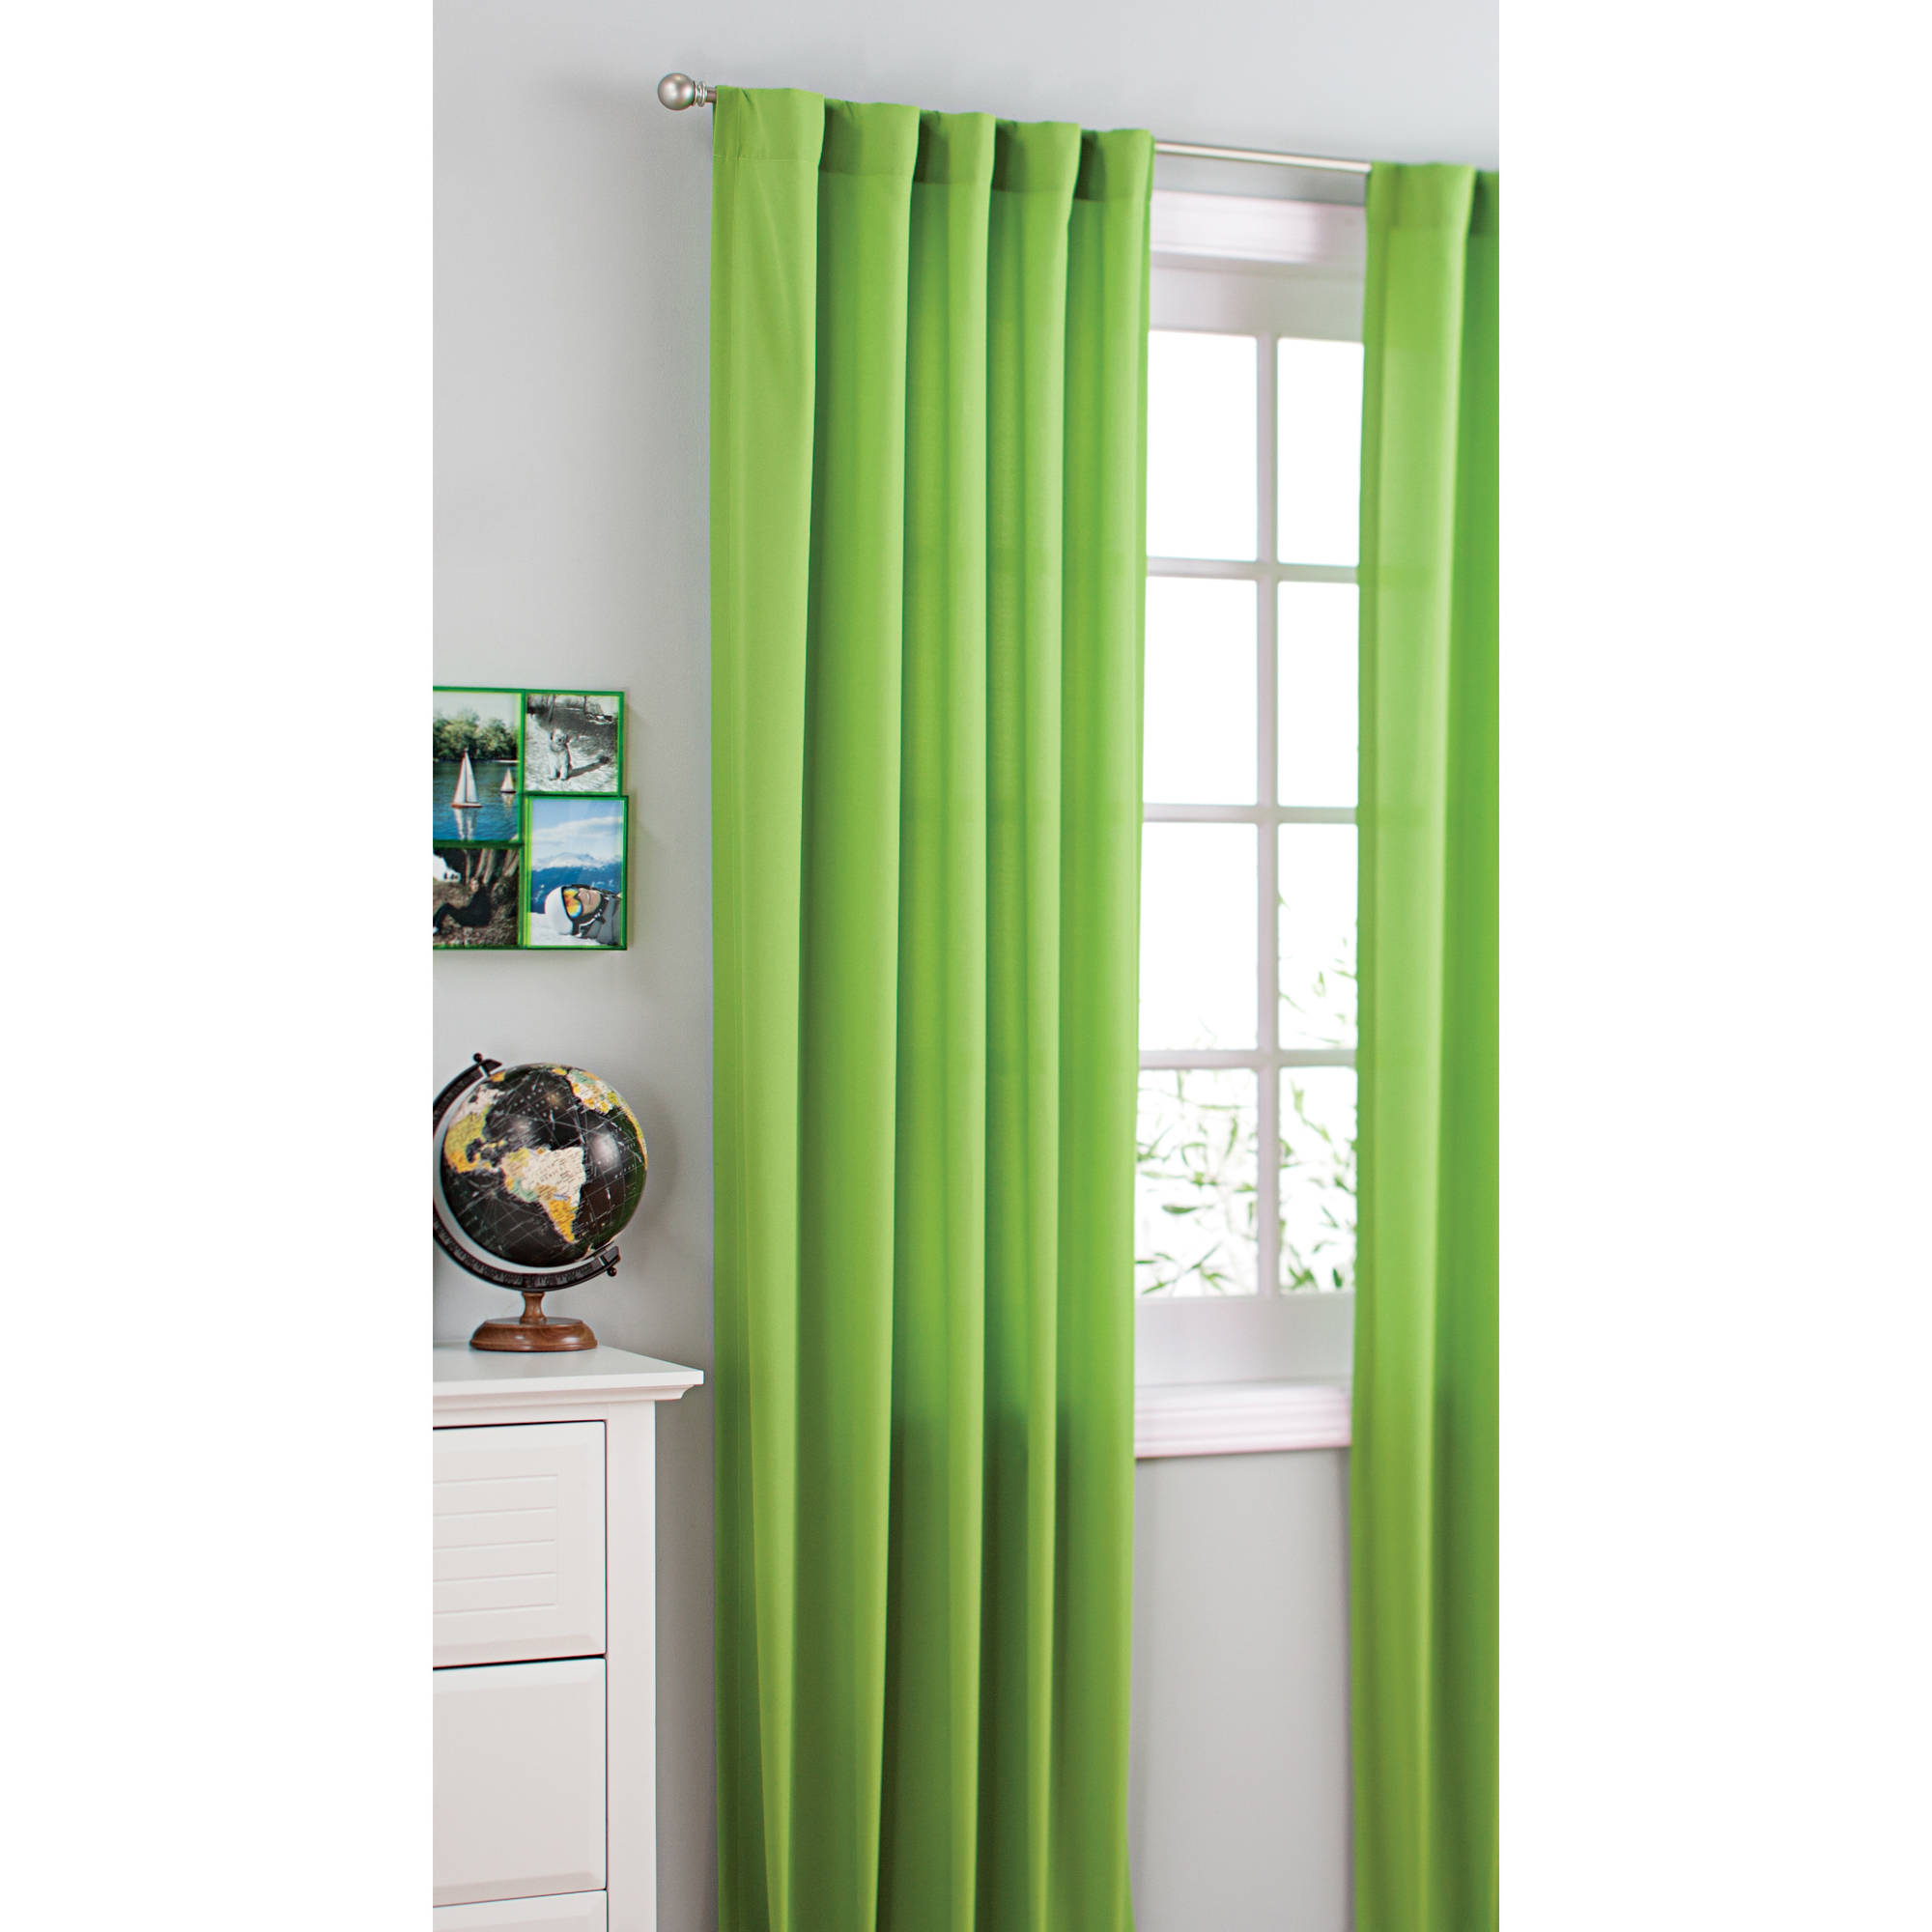 Your Zone Girls Bedroom Curtain Panels, Set of 2